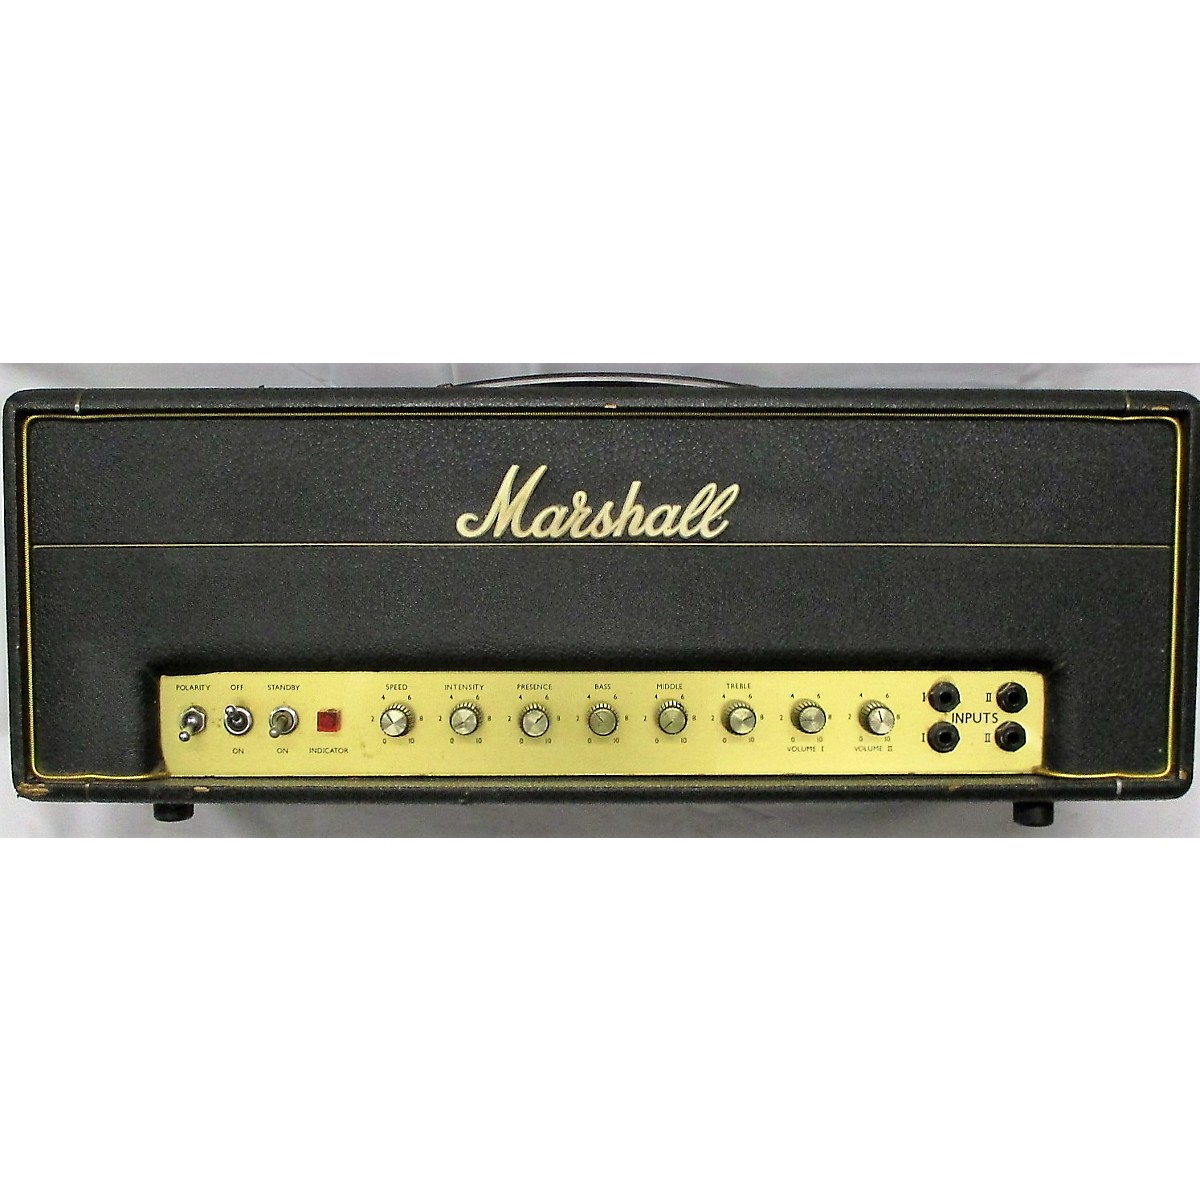 Marshall 1969 Tremolo 50 Head Tube Guitar Amp Head